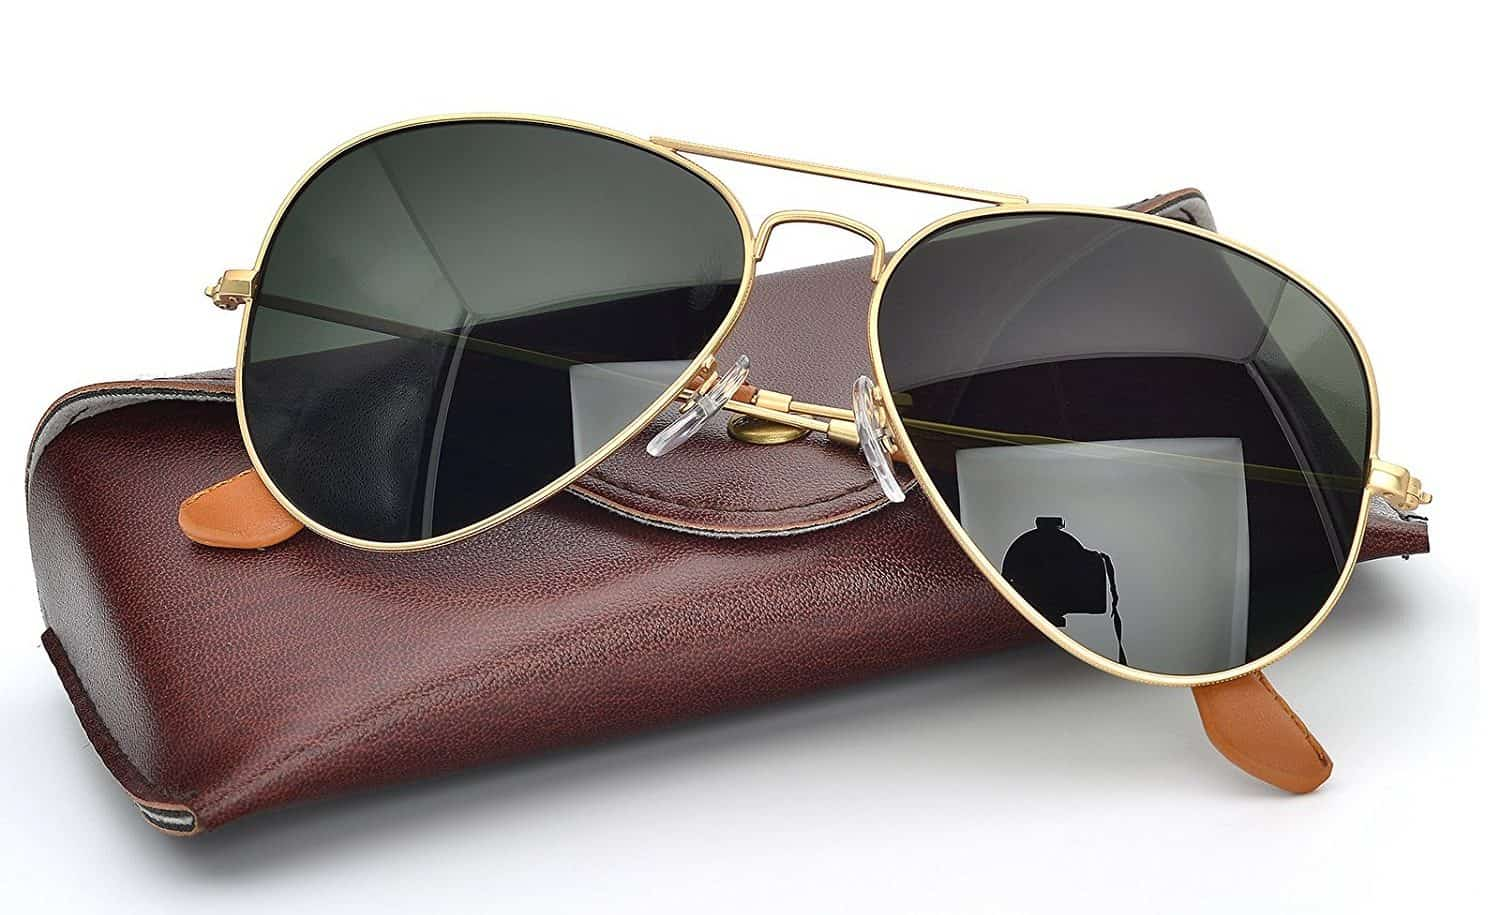 Image of BNUS corning aviator sunglasses